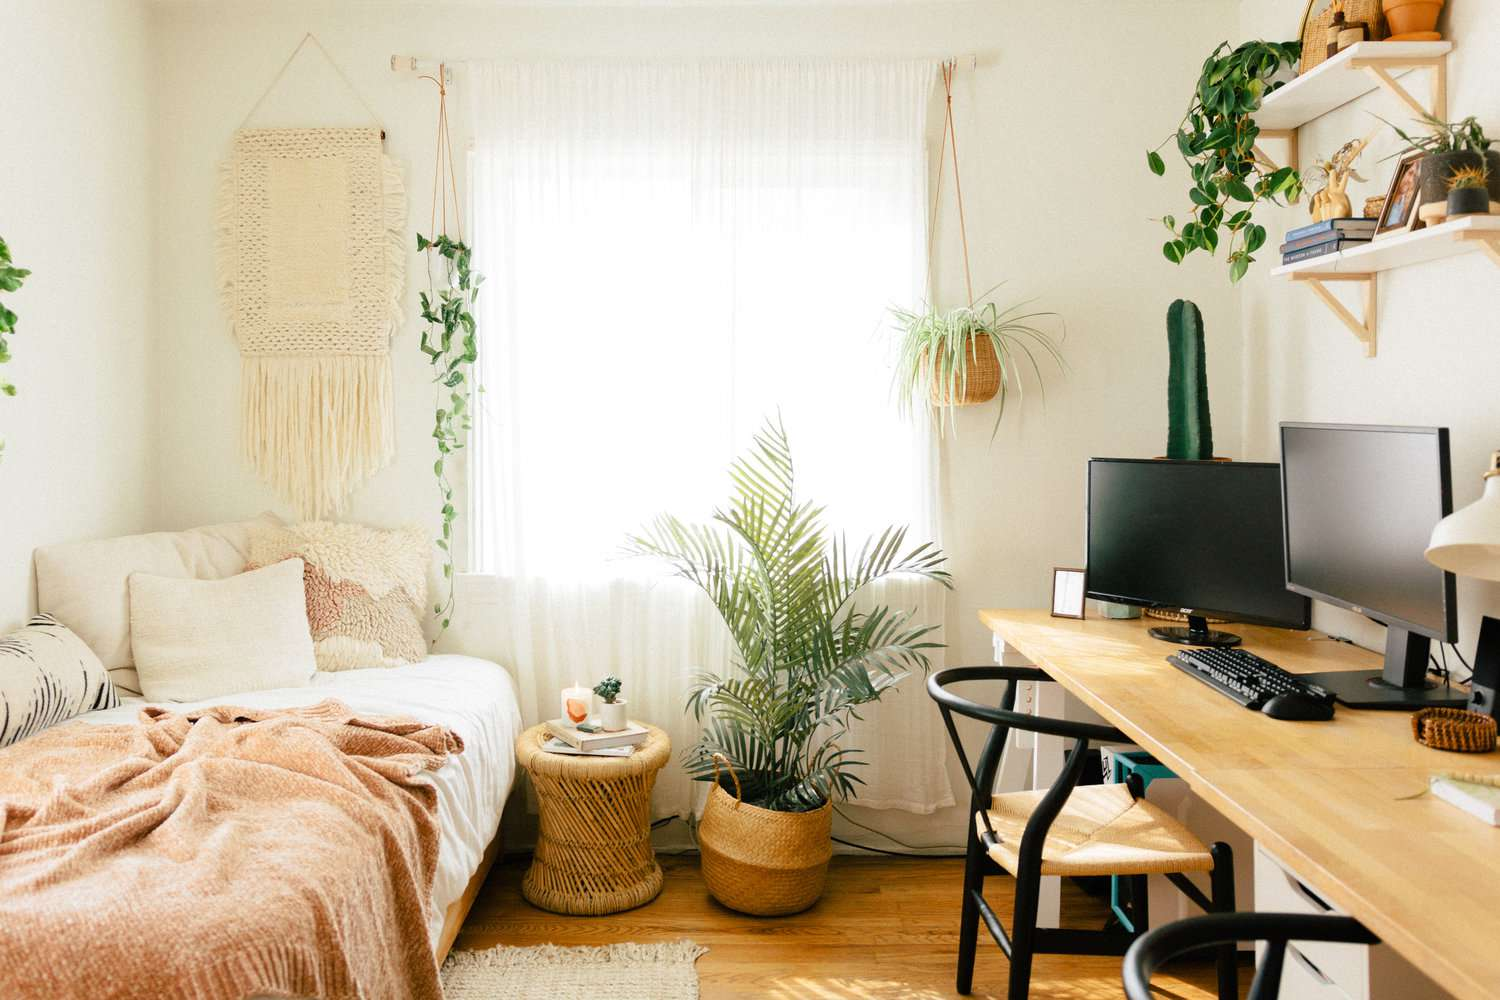 Small palm in a boho bedroom